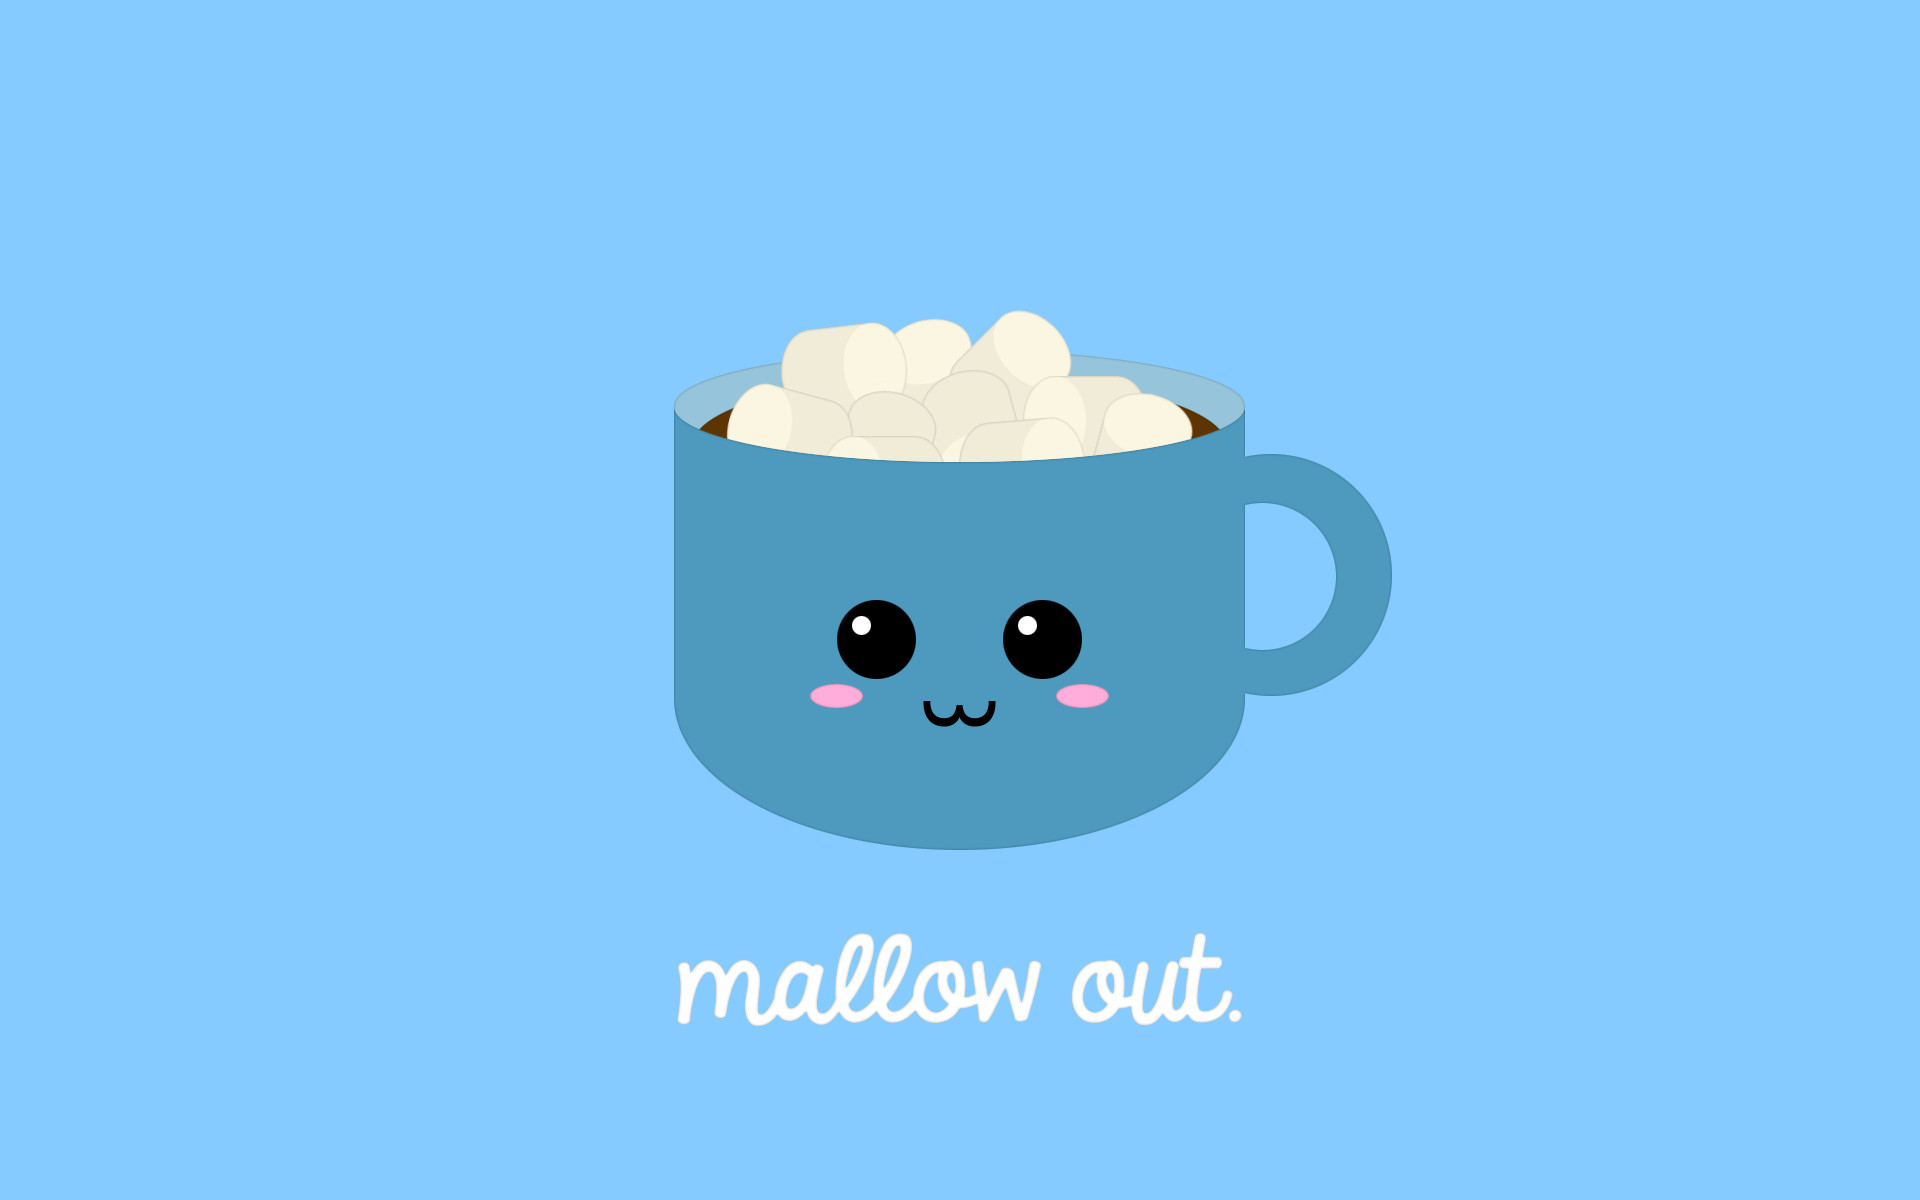 Collection of Cute Kawaii Wallpapers on HDWallpapers